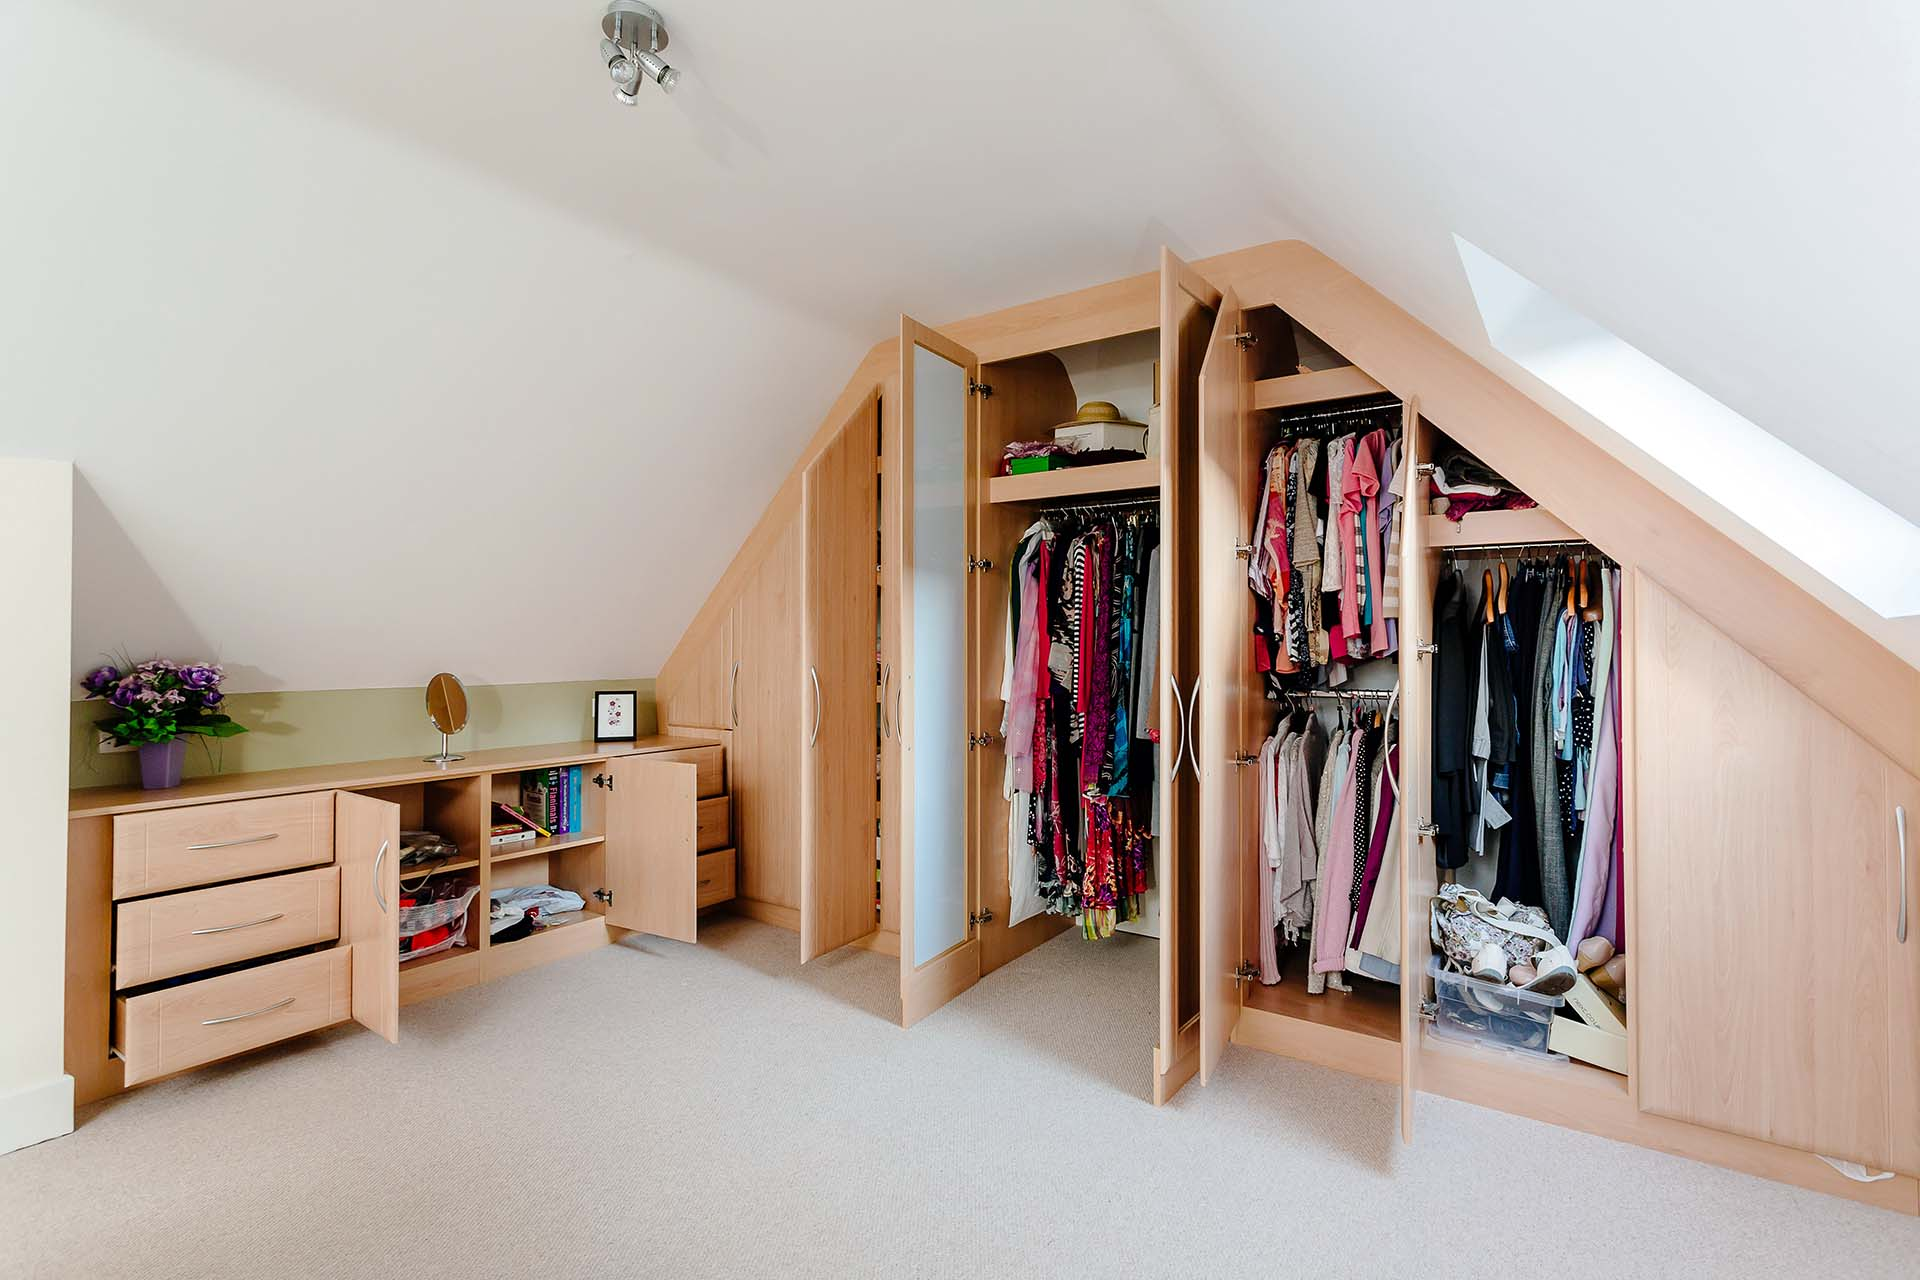 Making the best use of storage space with hinged door wardrobes